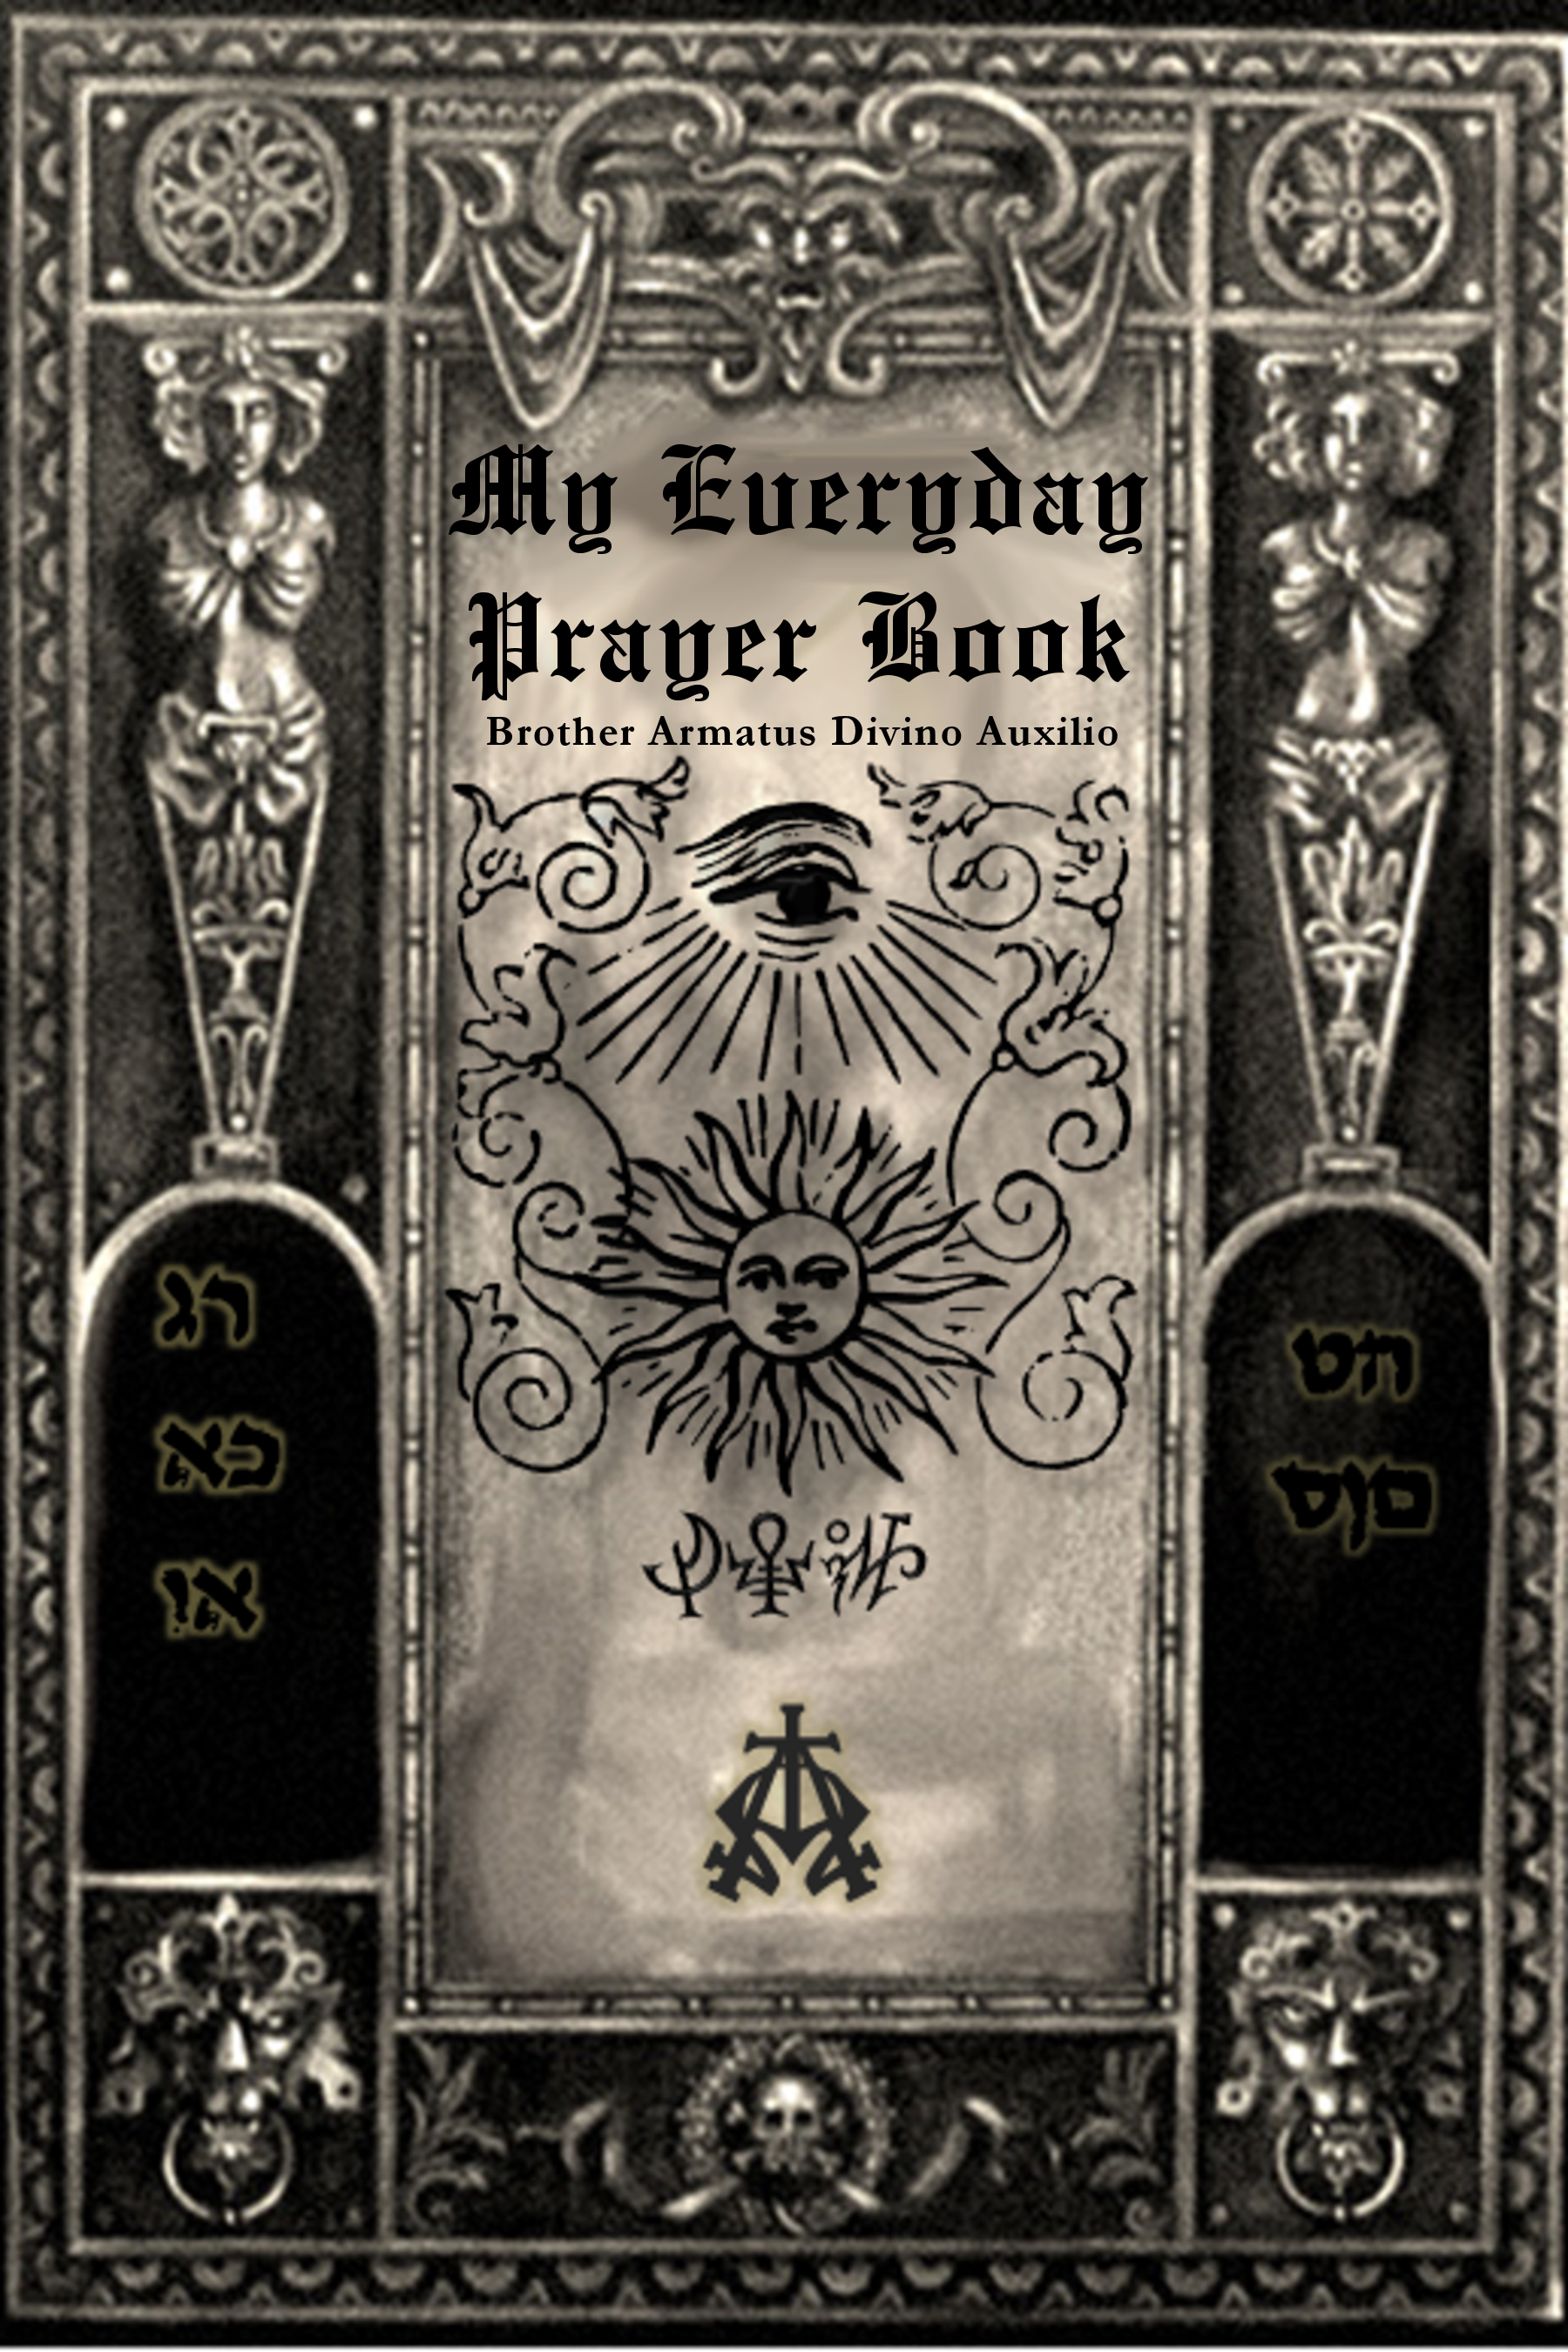 Free prayer book by mail